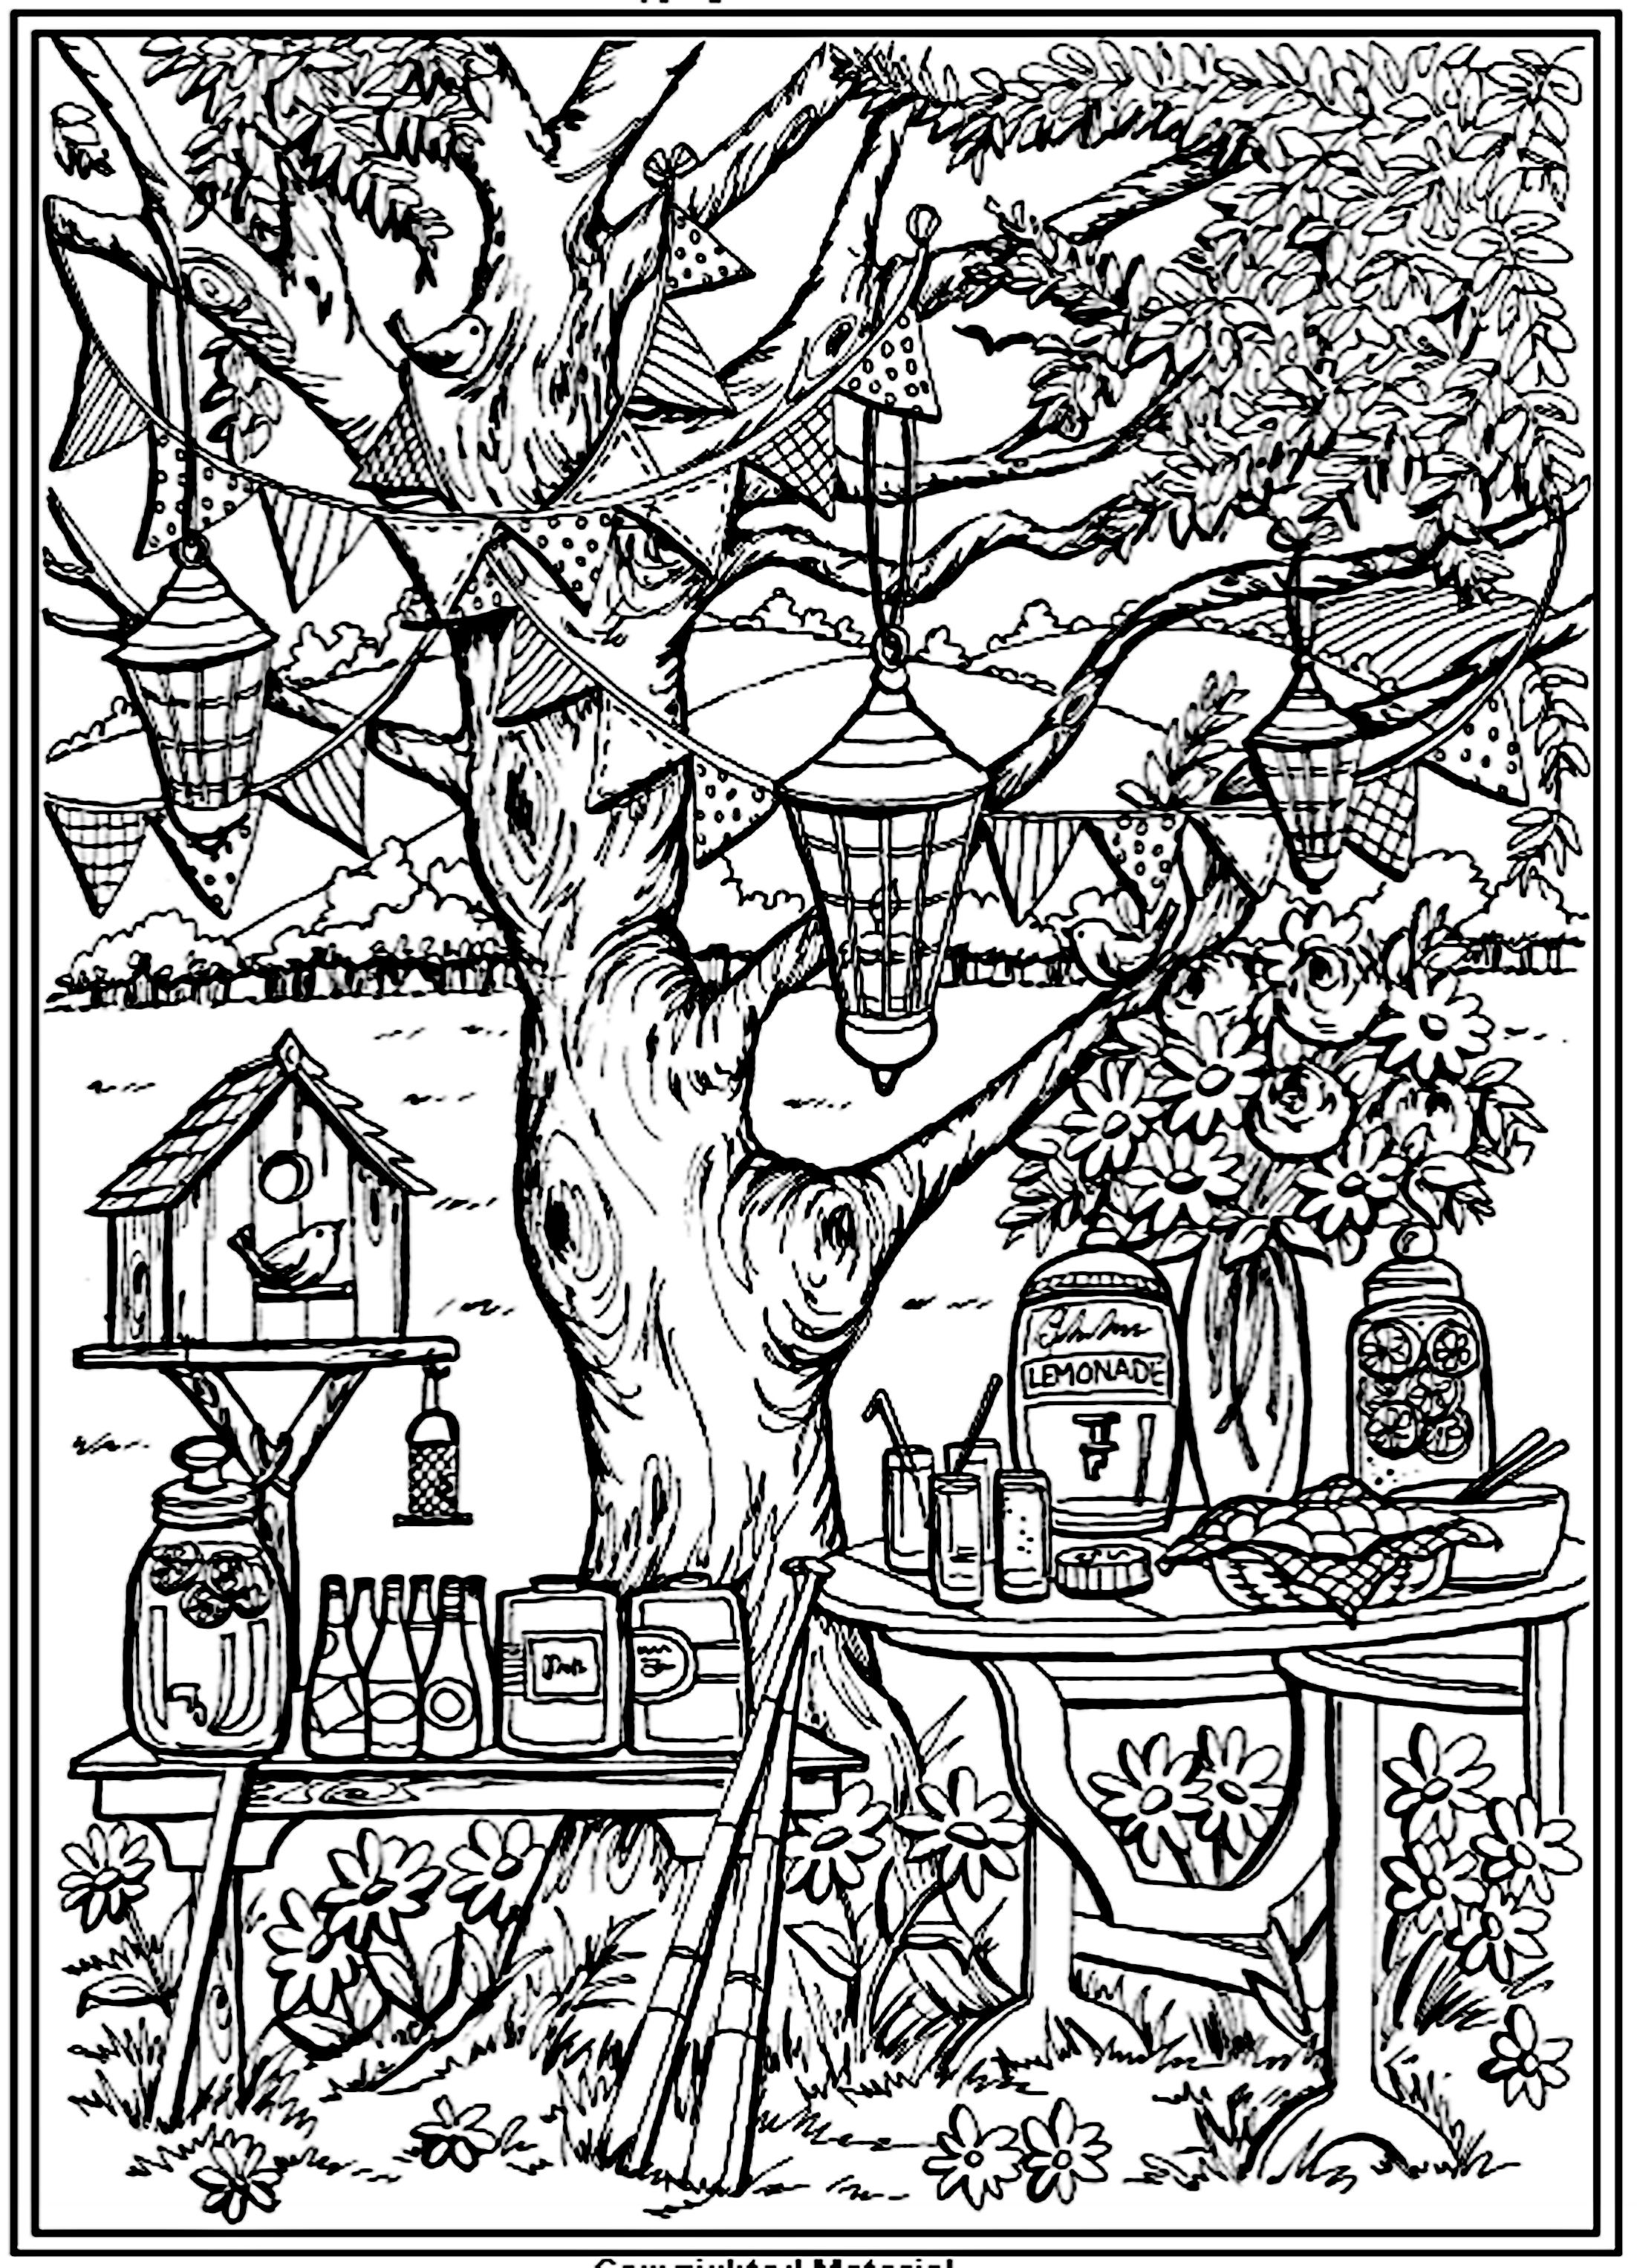 magic garden coloring page for adults - Magical Garden Coloring Book